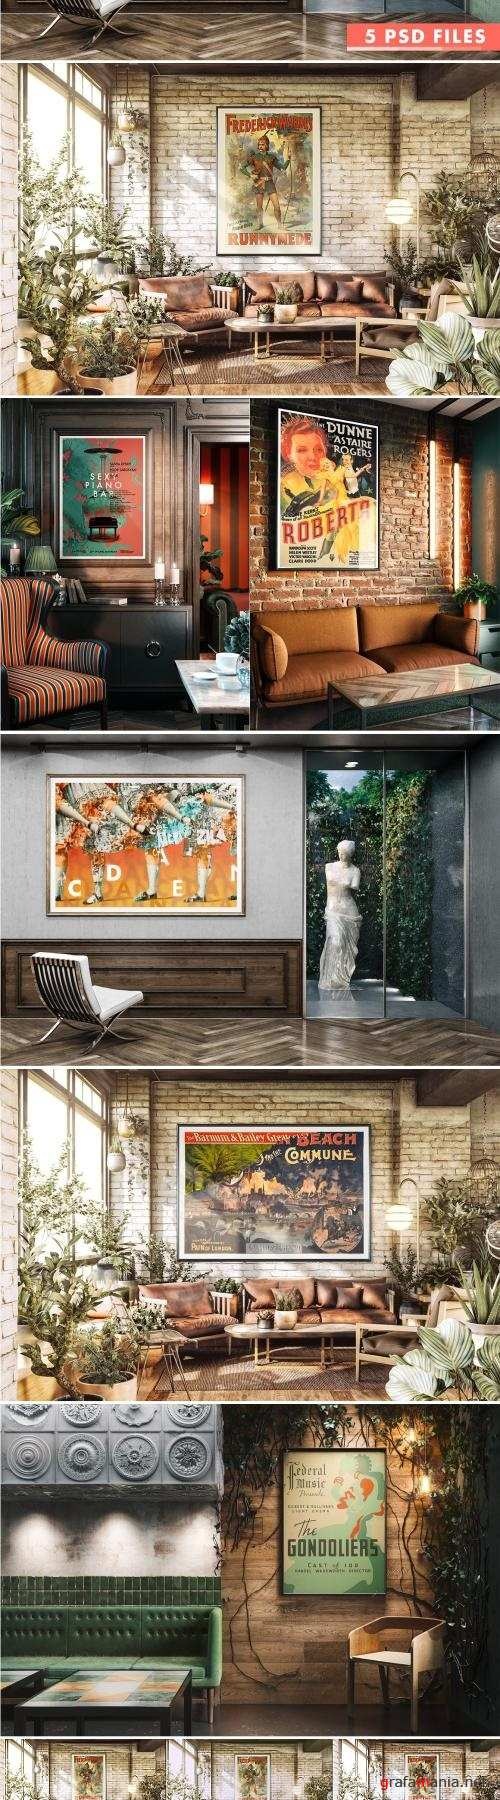 Great Interior Poster MockUp Set - 1865695